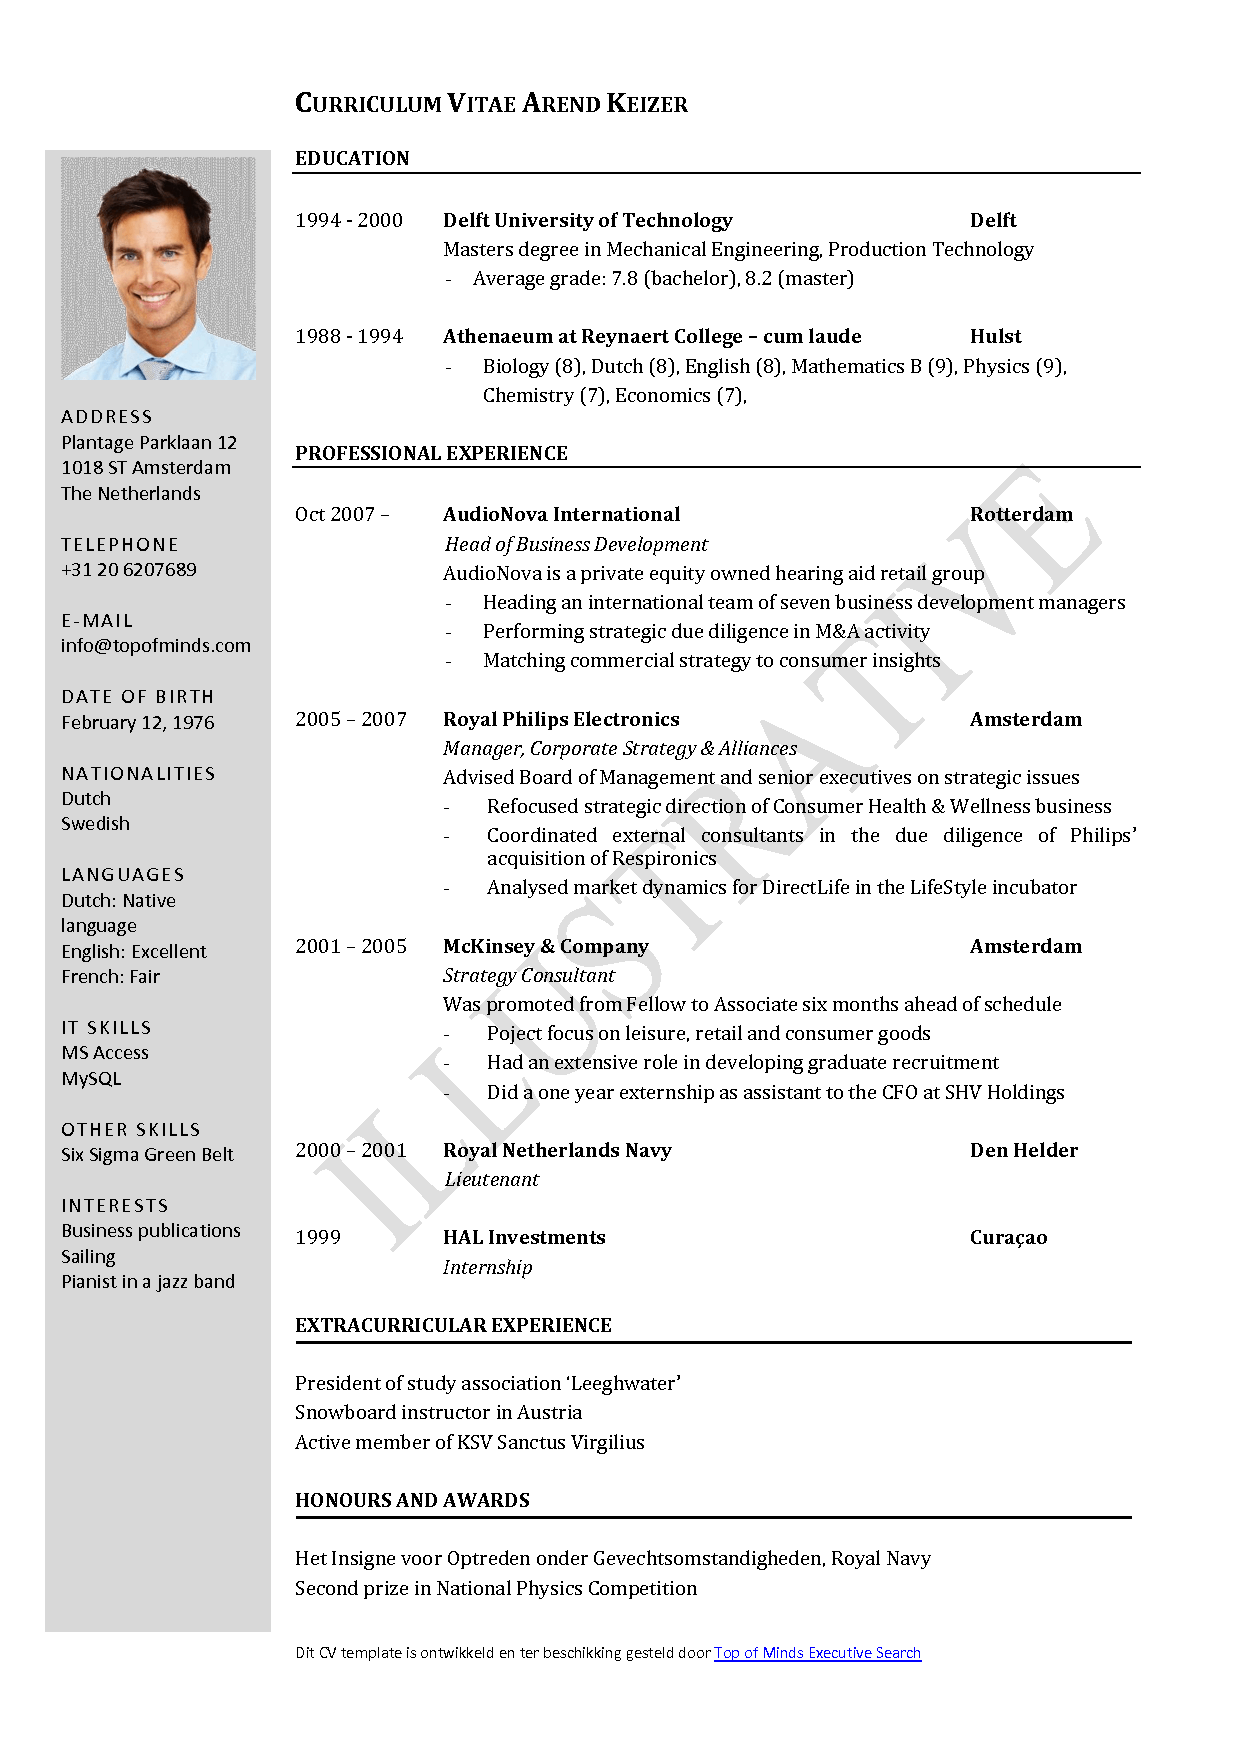 Superb Image Result For Download Two Page Sample Resume Format Throughout Curriculum Vitae Format